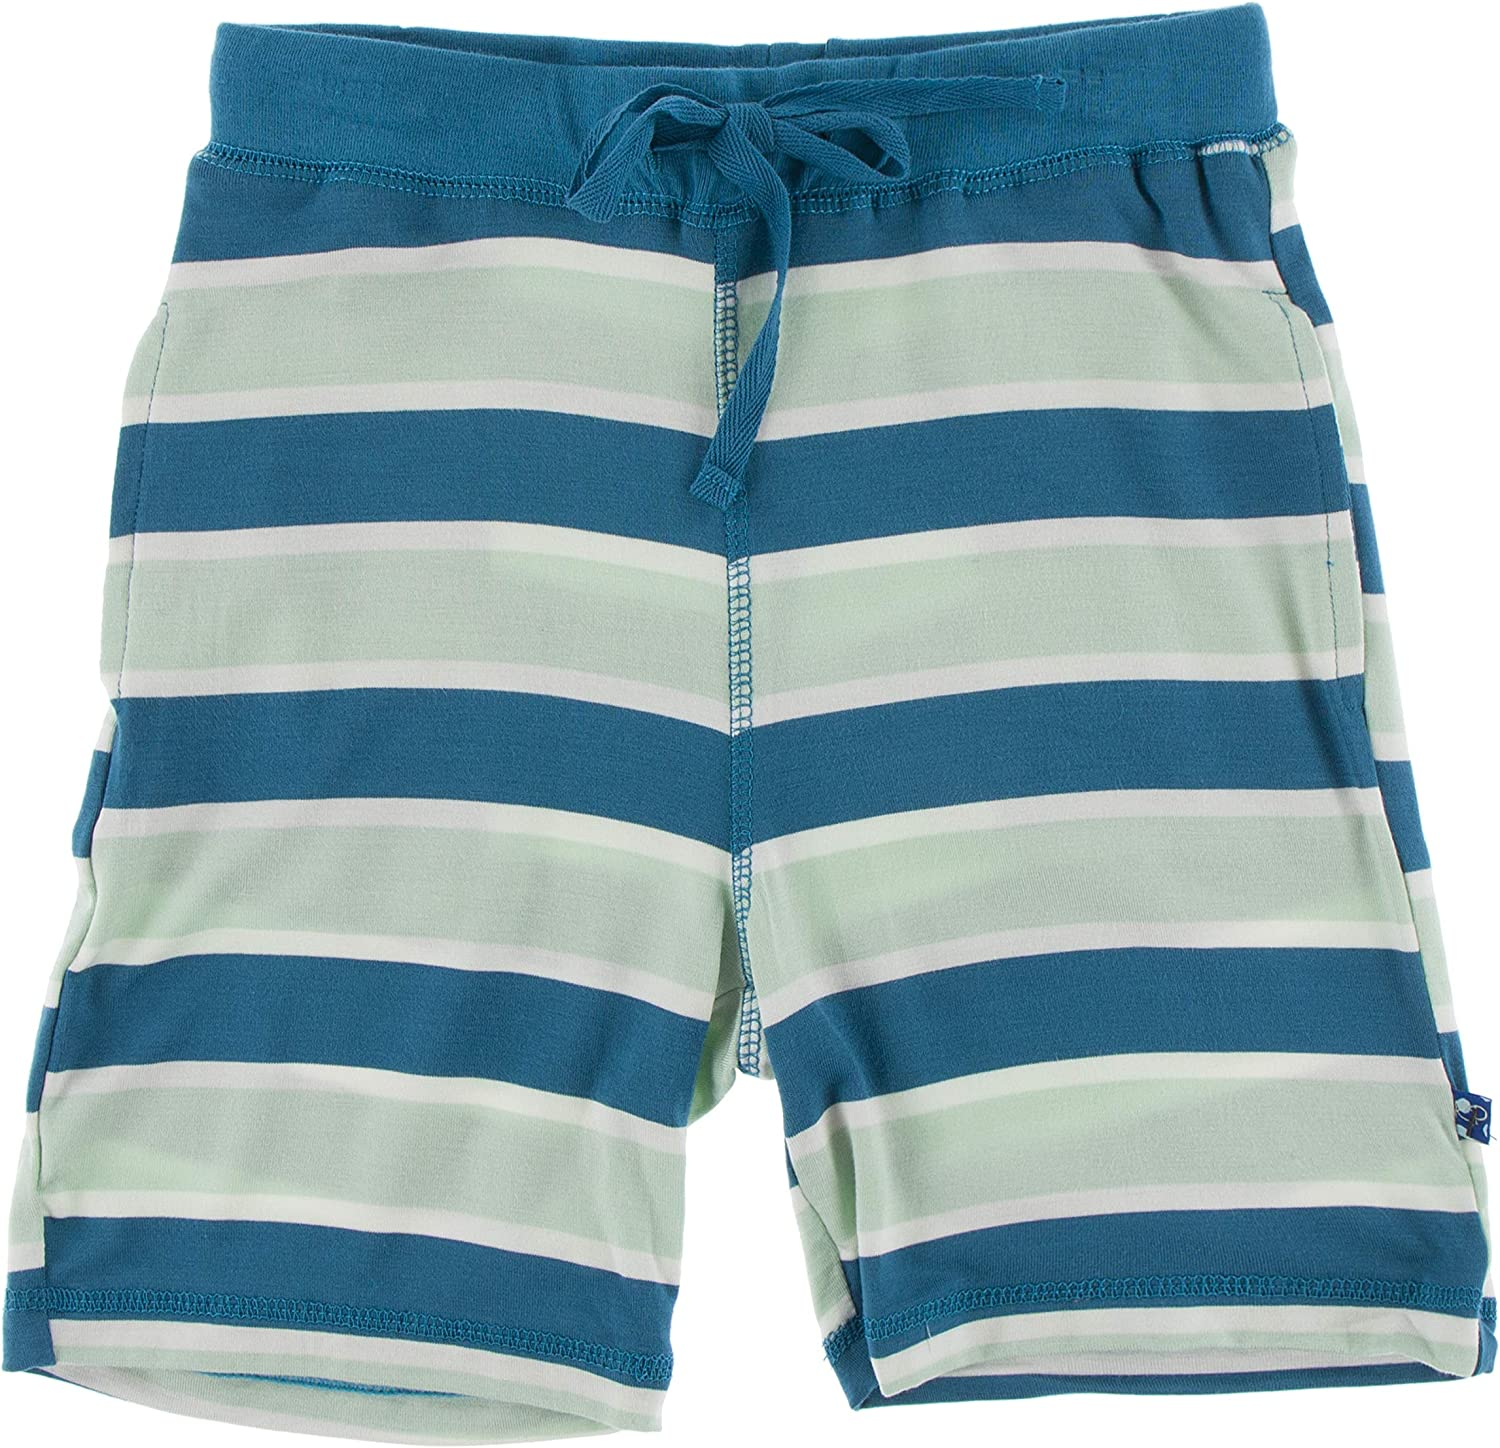 KicKee Pants Boys Basic Jersey Shorts, Made in Our Luxe Jersey Fabric